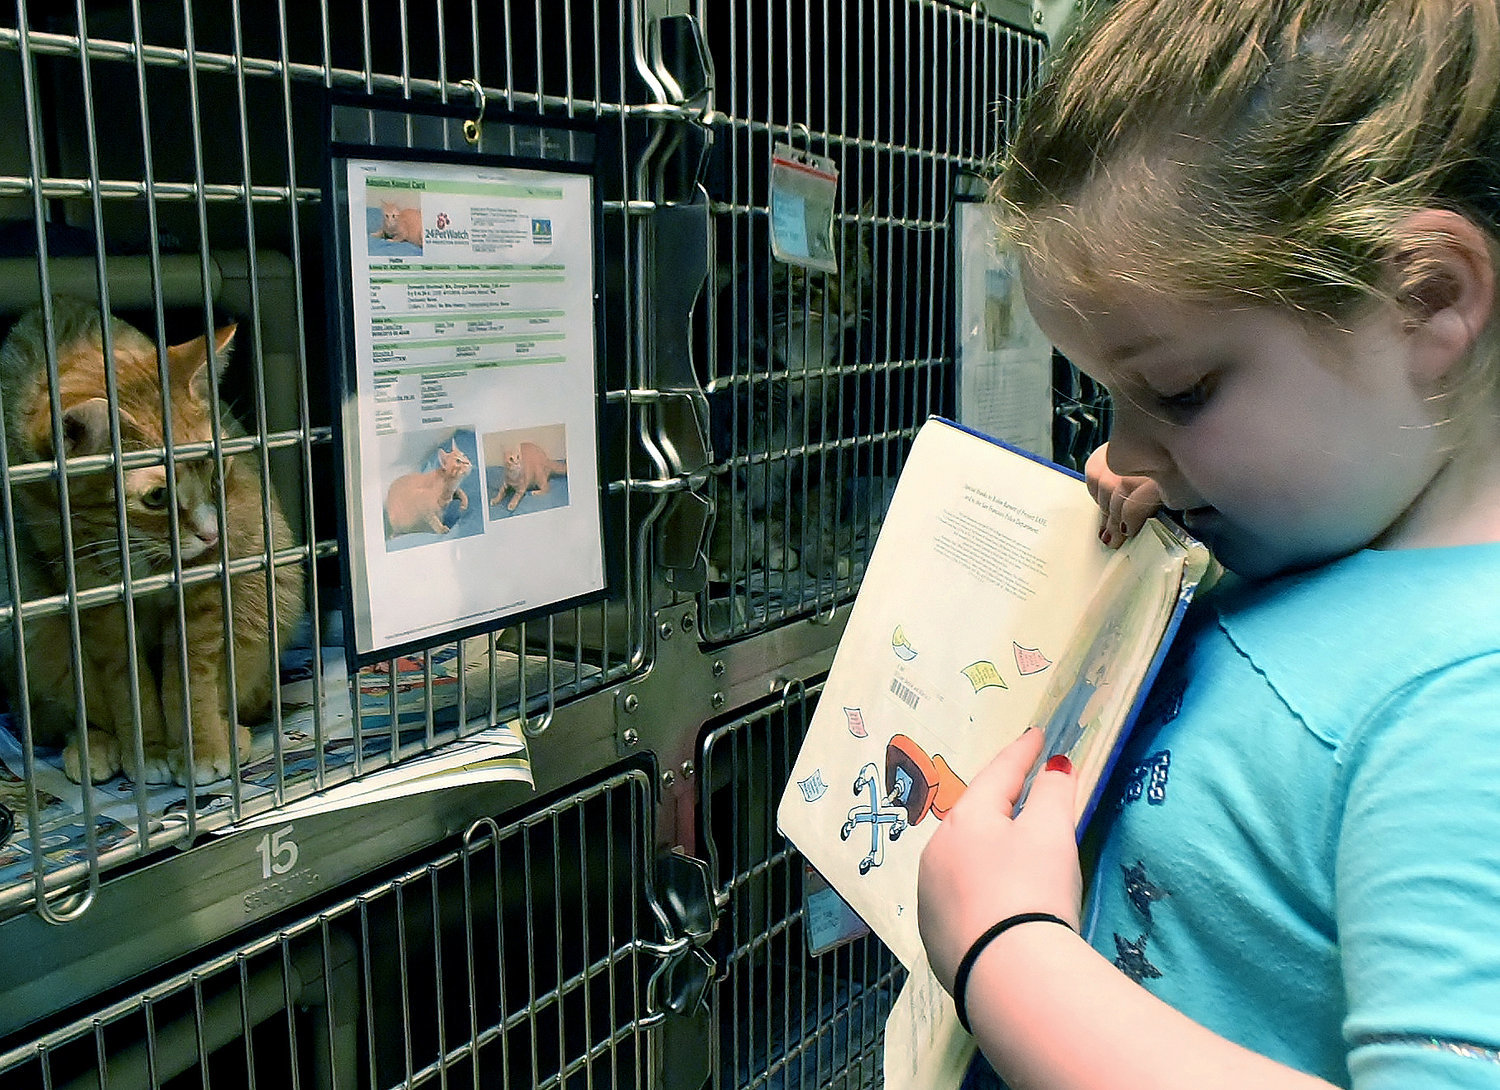 Hattie, a cat available for adoption at the Etowah Valley Humane Society on Ladds Mountain Rd. in Cartersville, listens carefully as Allatoona Elementary School first-grader and Jr. Beta Club member Morgan Donnelly reads to her.